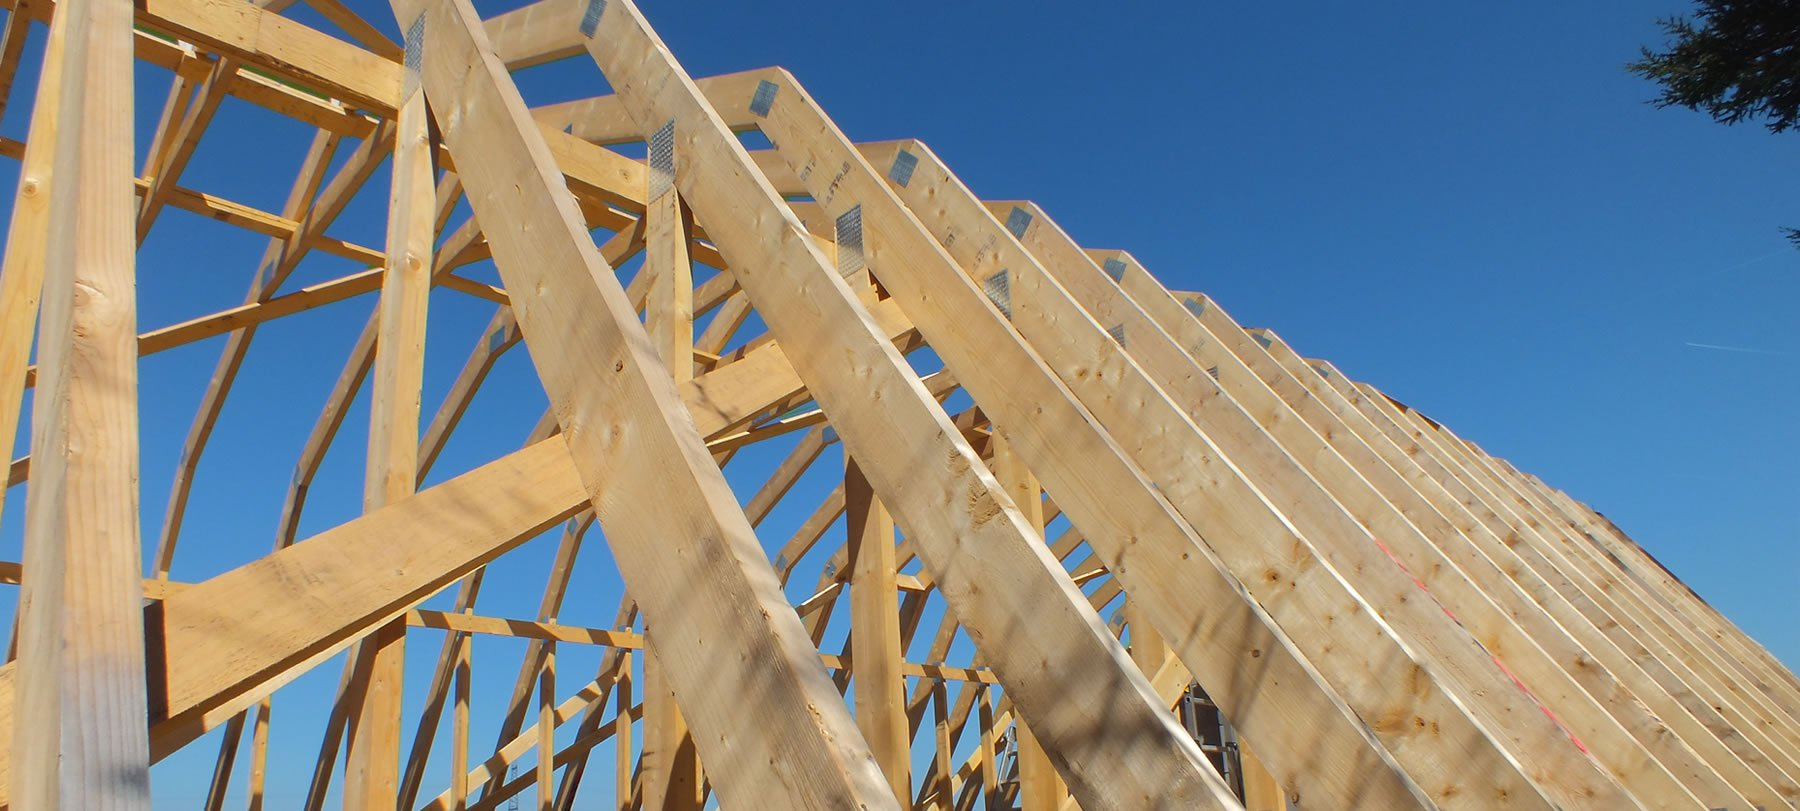 The Cost Saving Benefits Of Roof Trusses Aber Roof Truss